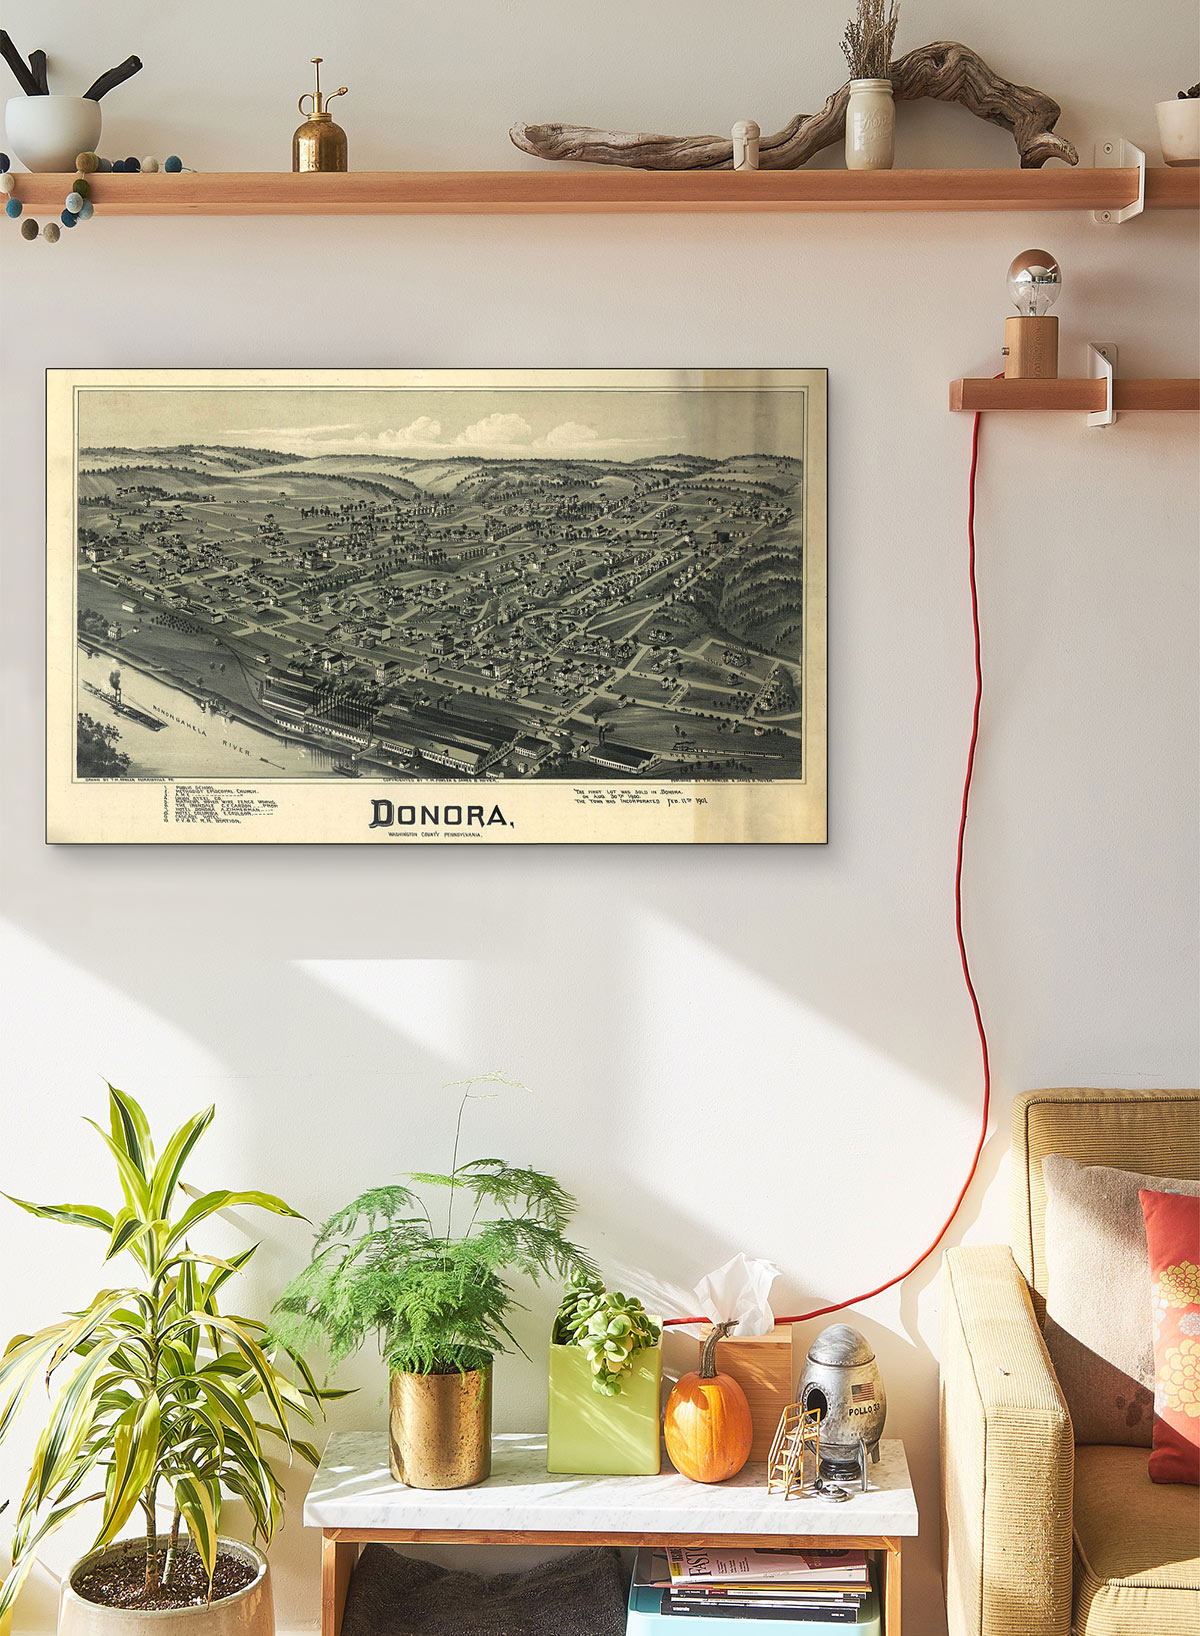 Donora Washington County Pennsylvania 1901 LARGE Vintage Map